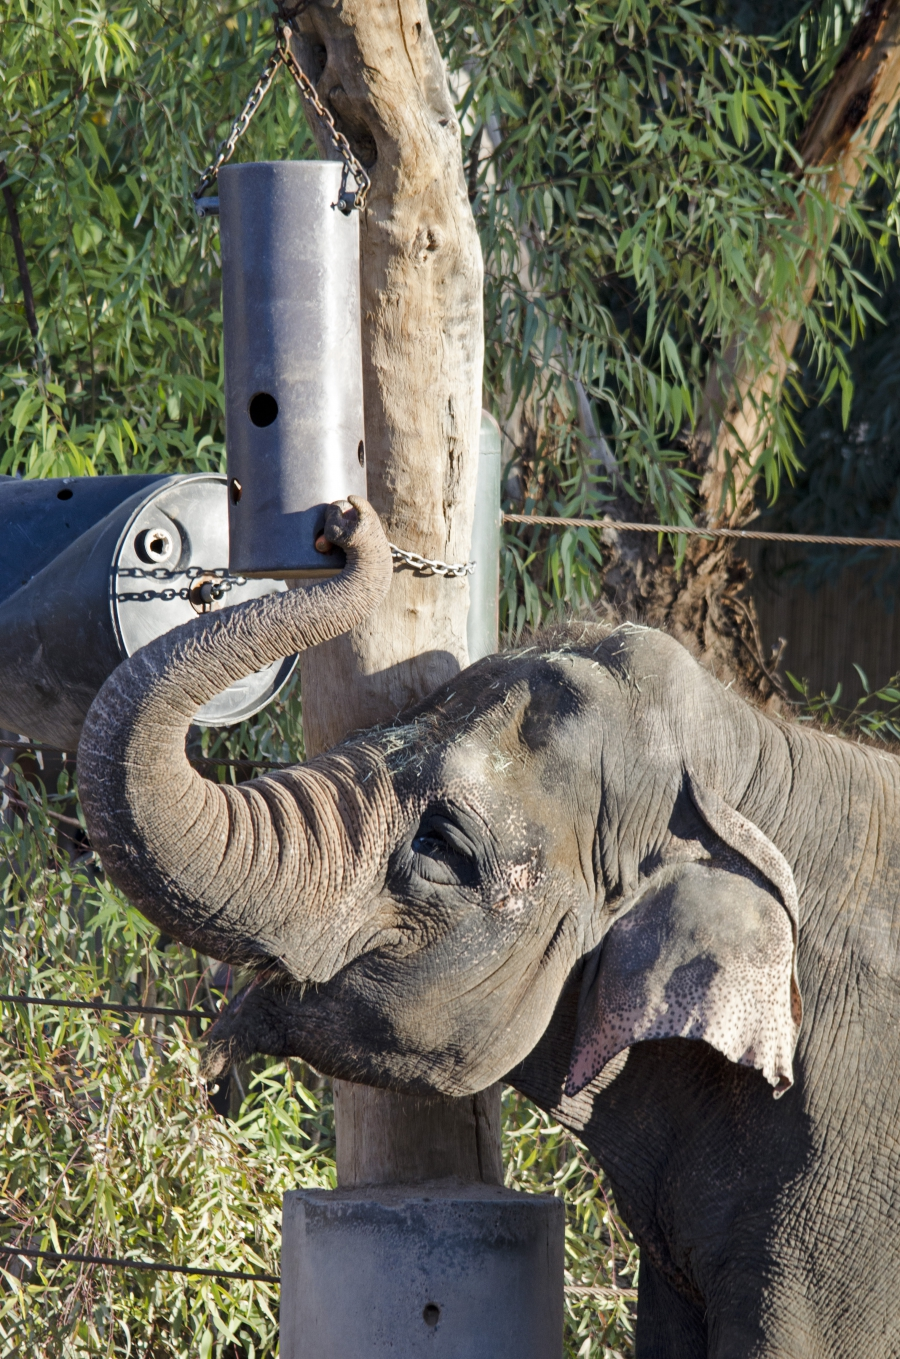 An elephant at the Phoenix Zoo getting a snack from a puzzle feeder.